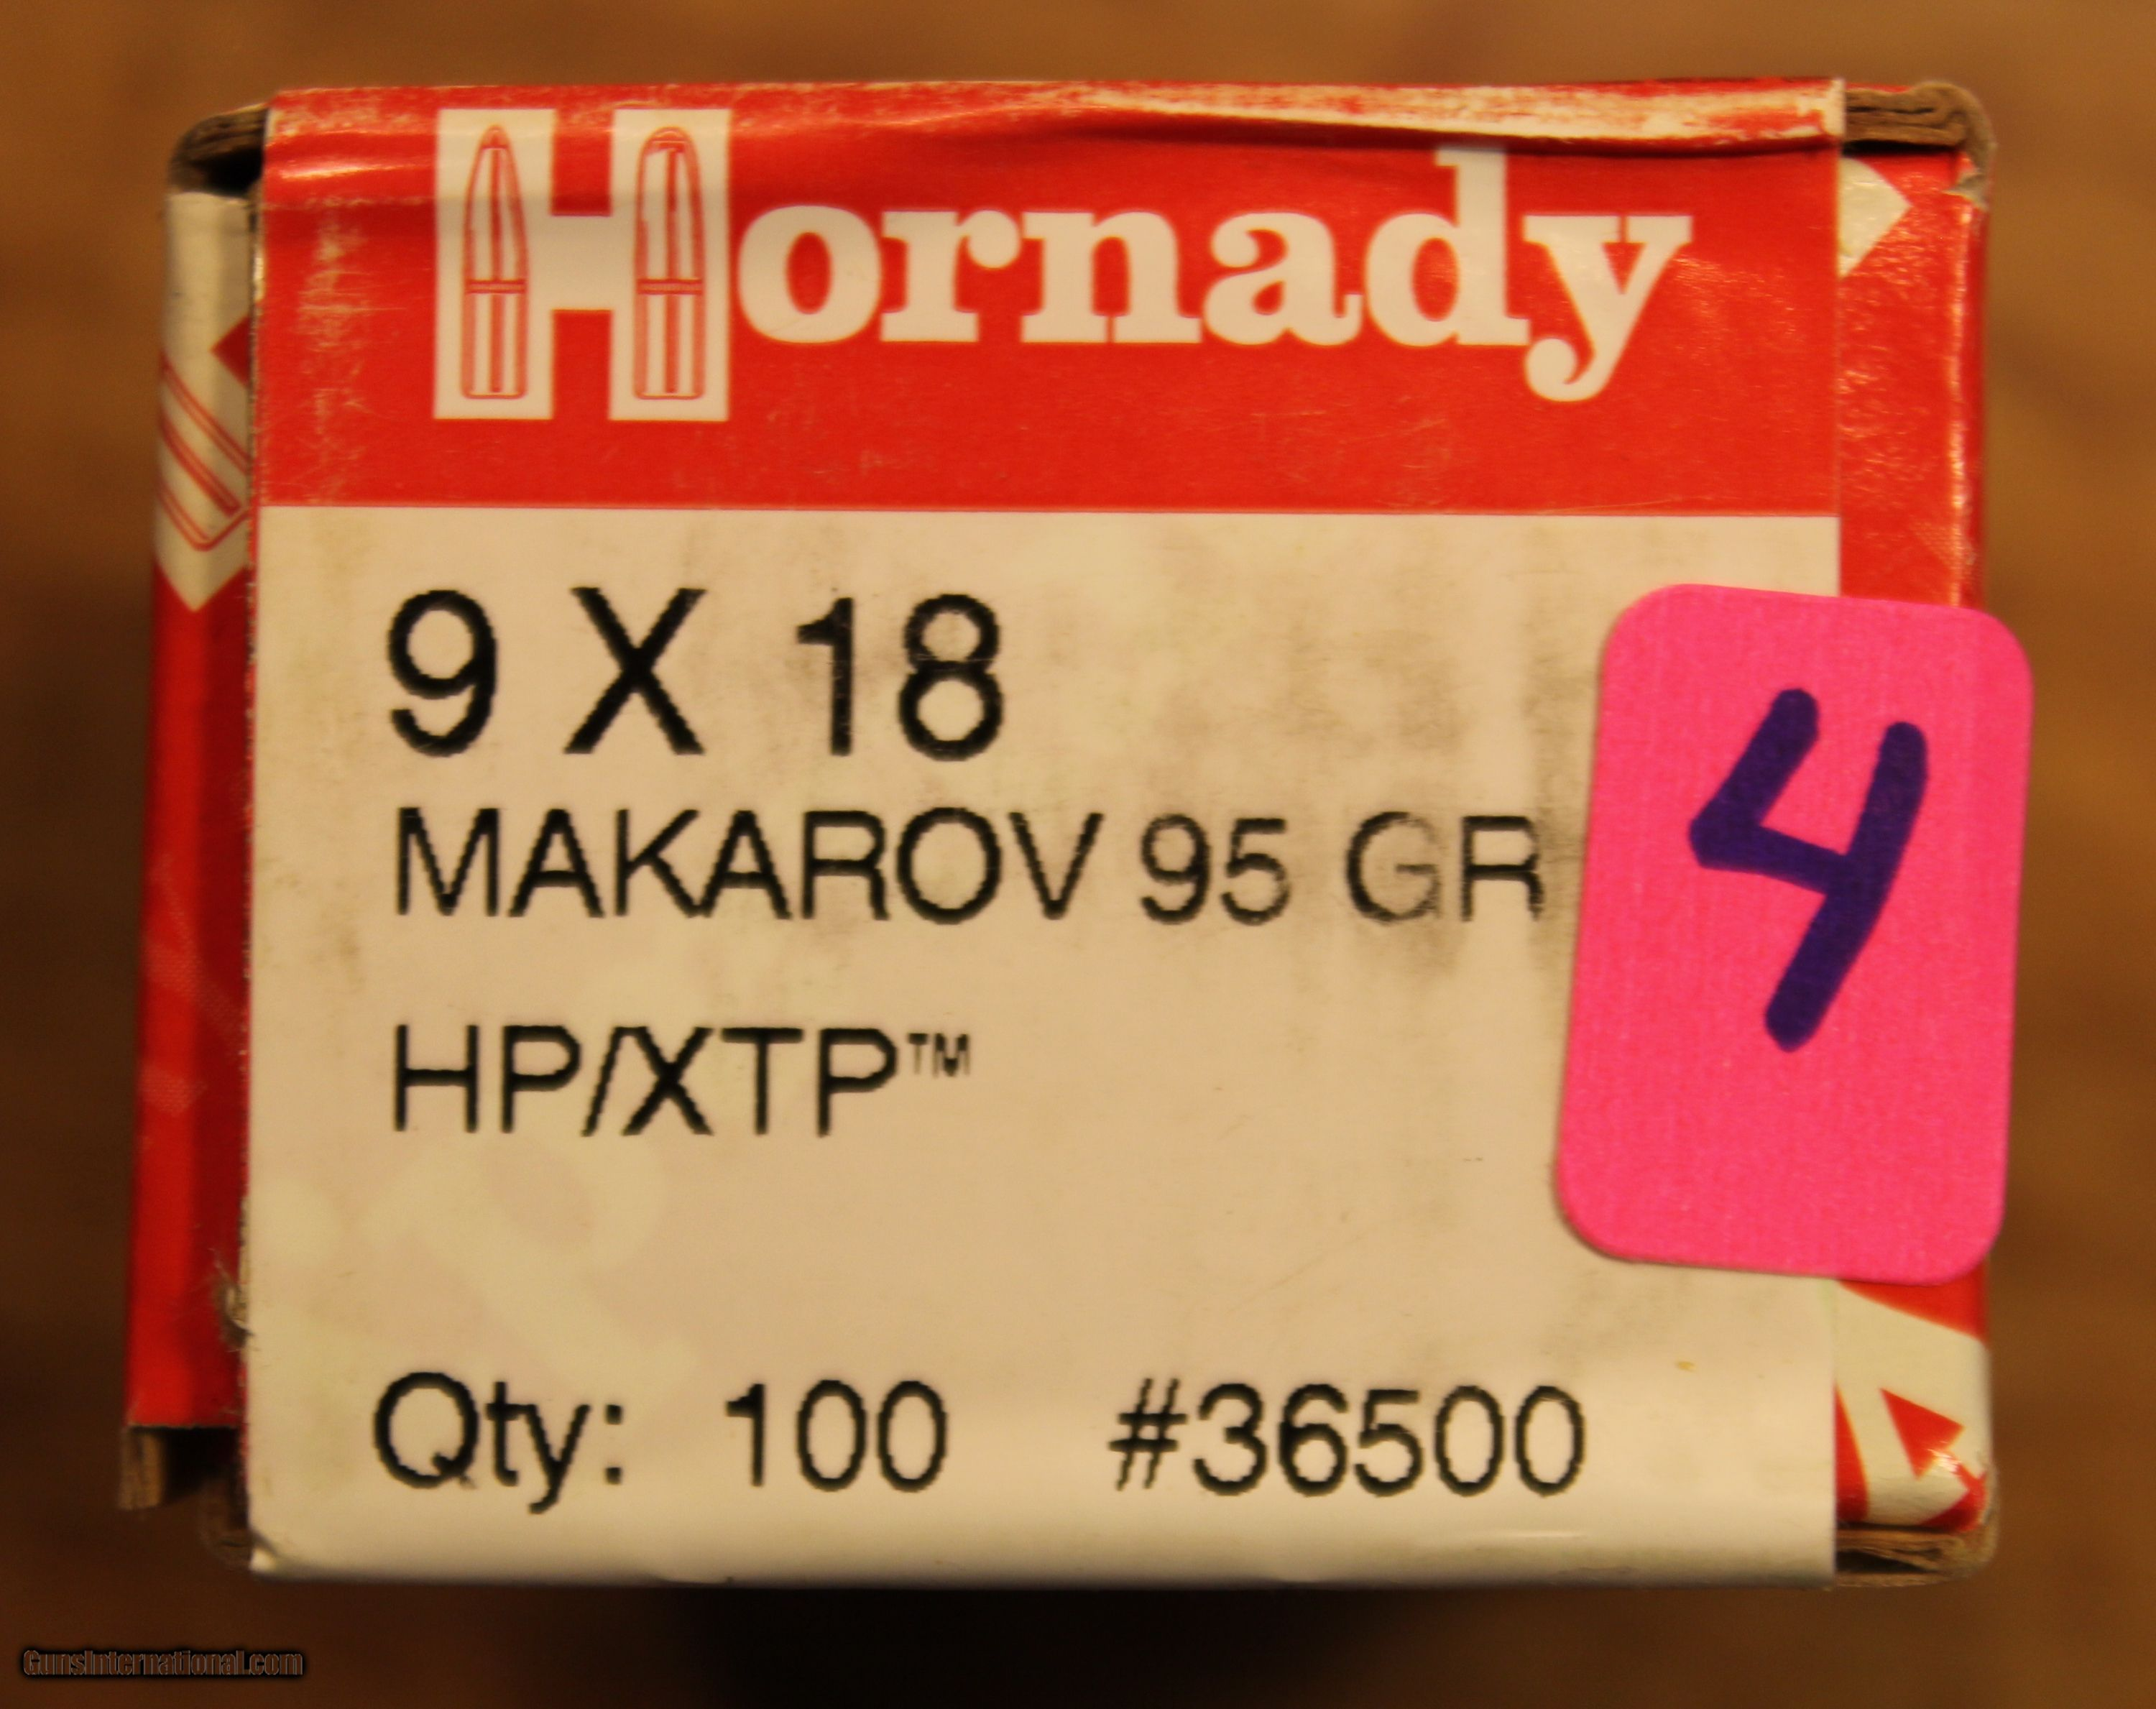 Two (2) Boxes of 100 count 9x18 Makarov Bullets Hornady Bullets 95